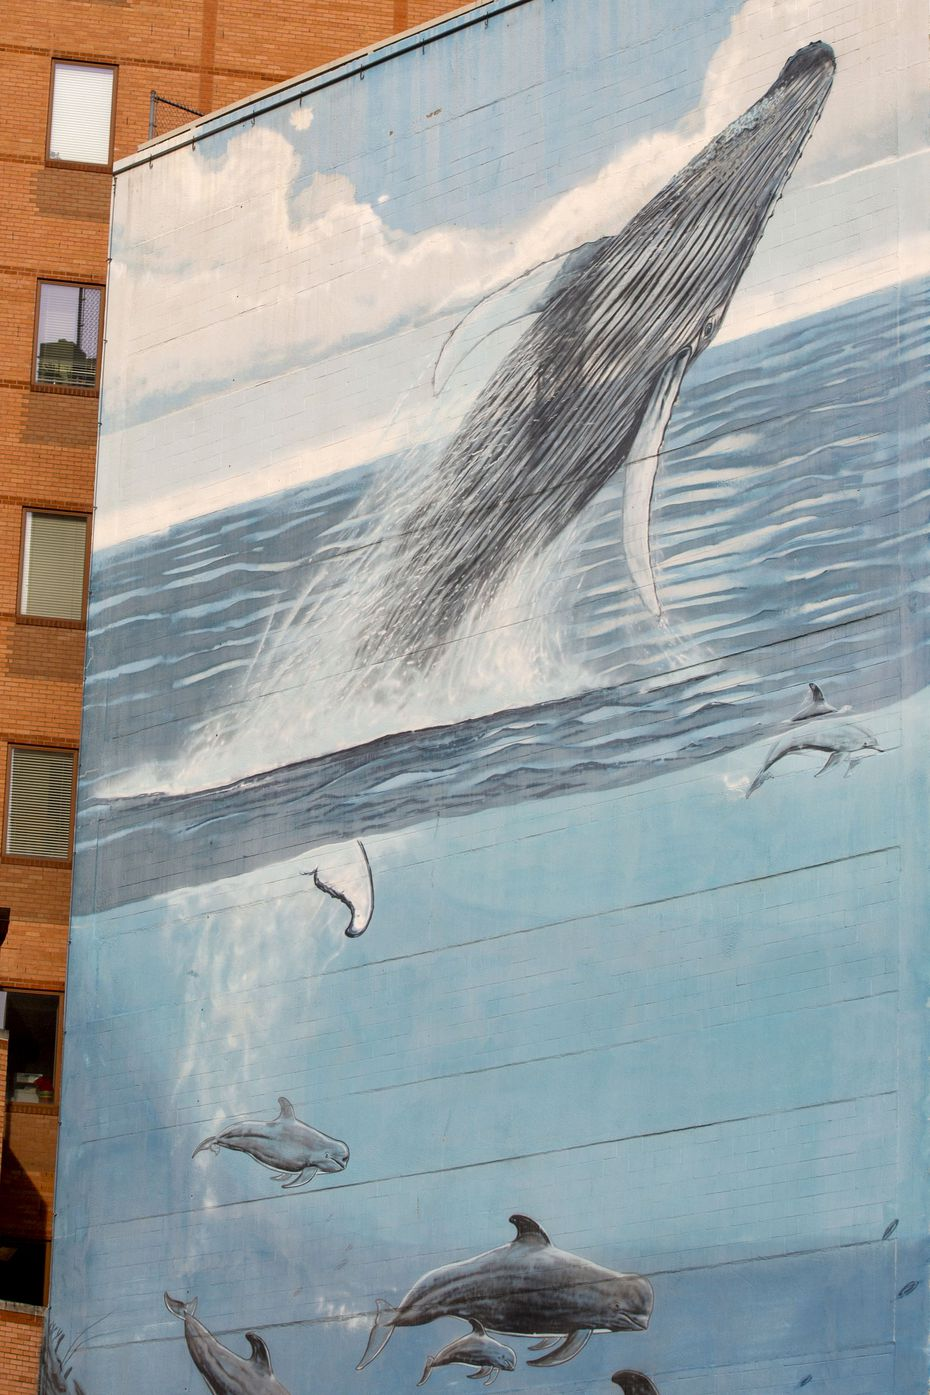 """After recent advertising posters came down, a mural painted in 1999 by the artist and conservationist Wyland is visible on Tuesday, April 21, 2020 in downtown Dallas. The mural is part of a series of 101 he did around the world called """"Whaling Walls."""""""